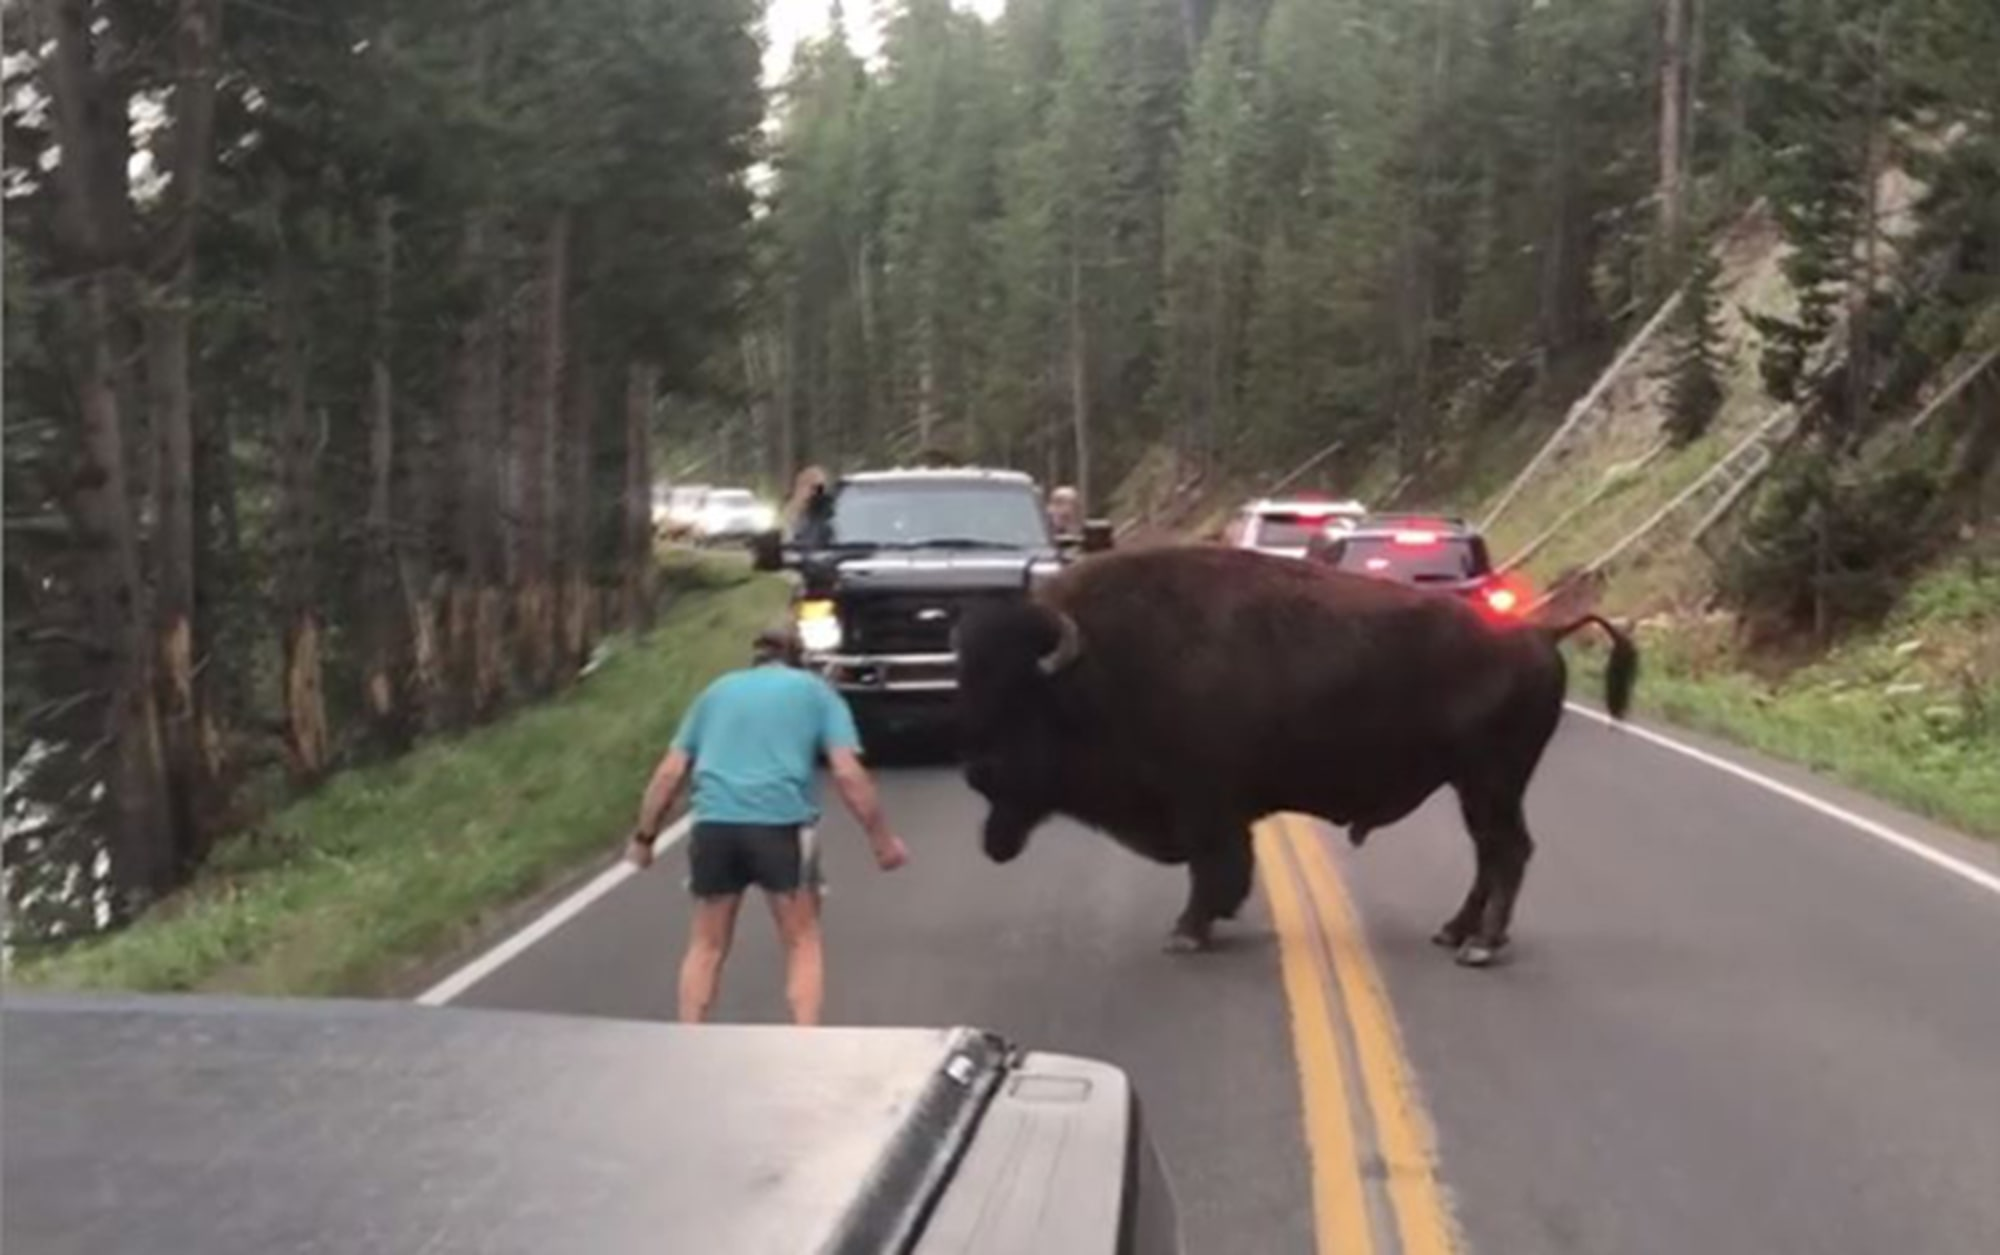 180804 bison yellowstone al 1041 e784982a6017f0721bc65d810c2ca564.fit 2000w